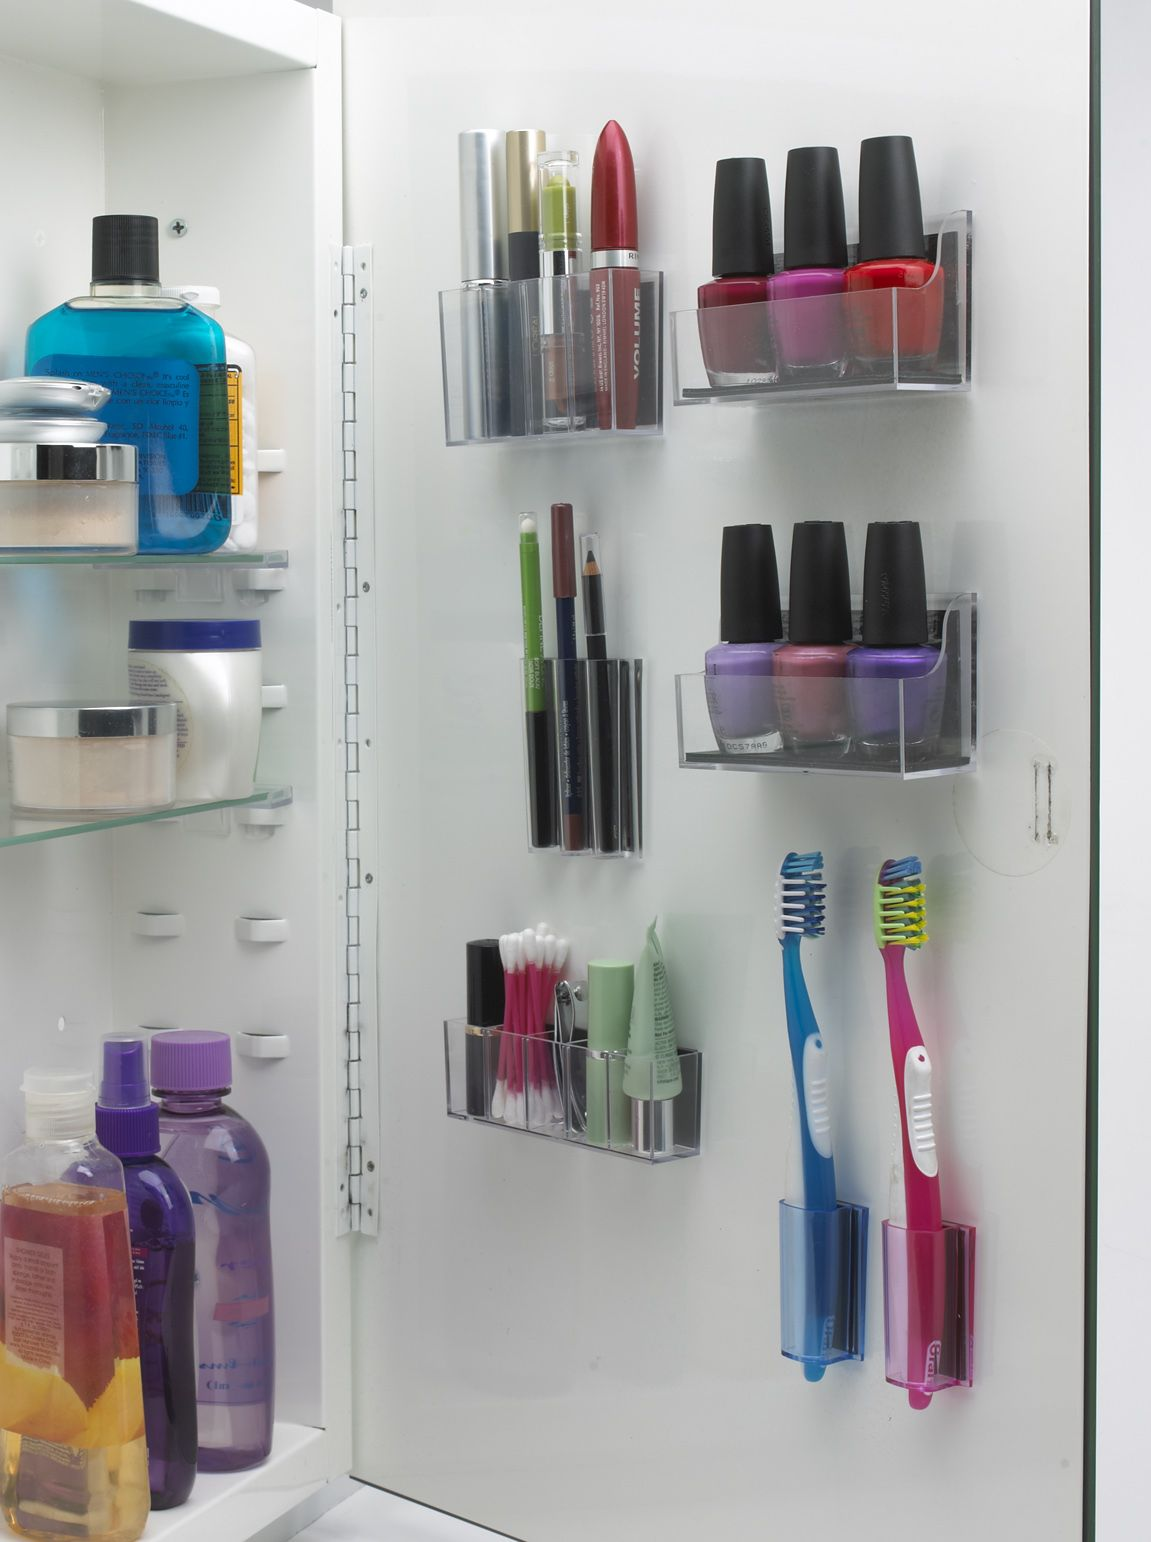 Bathroom cabinet organizers - Magnapods Help You Organize Items In Your Medicine Cabinet I Love The Toothbrush Holder